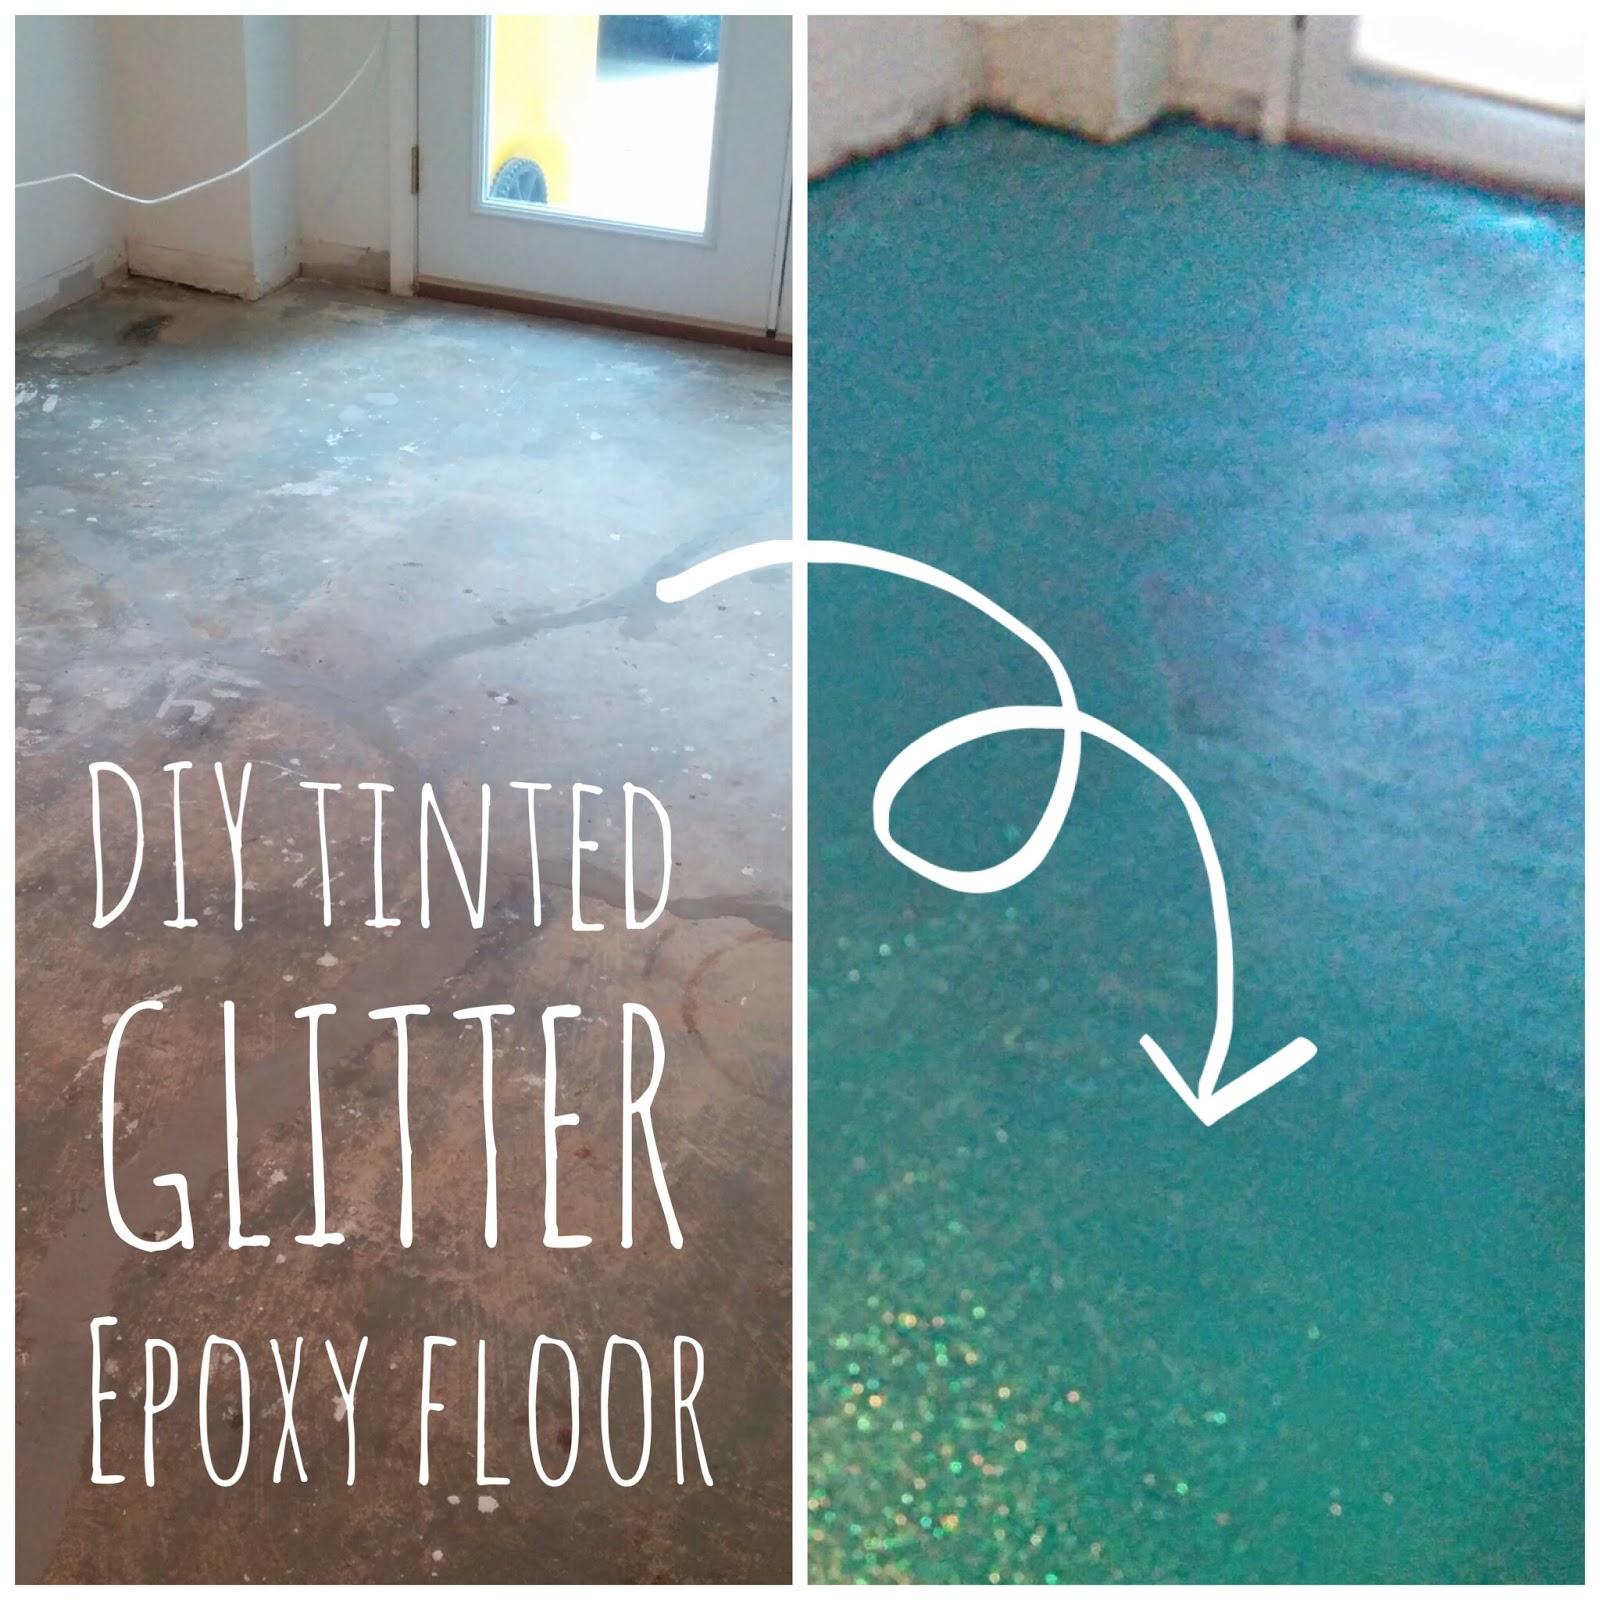 Lola Tangled DIY Turquoise Glitter Epoxy Floor - Garage floor tracks